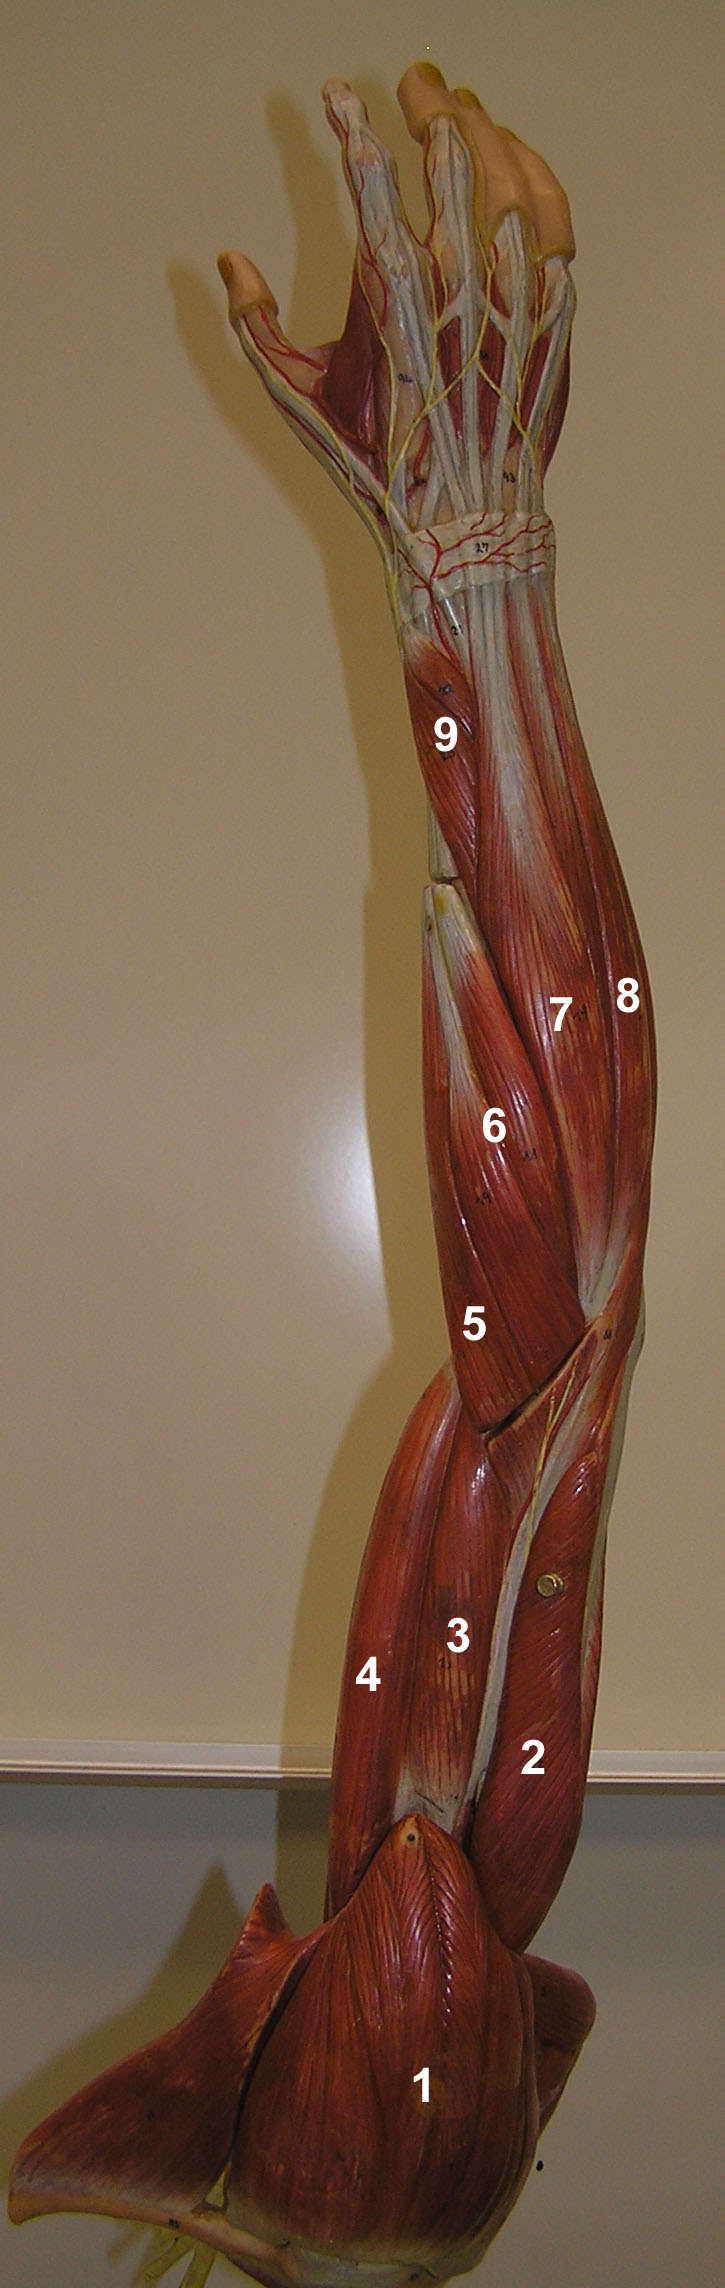 1 Deltoid 2 Triceps Brachii Lateral Head 3 Brachialis 4